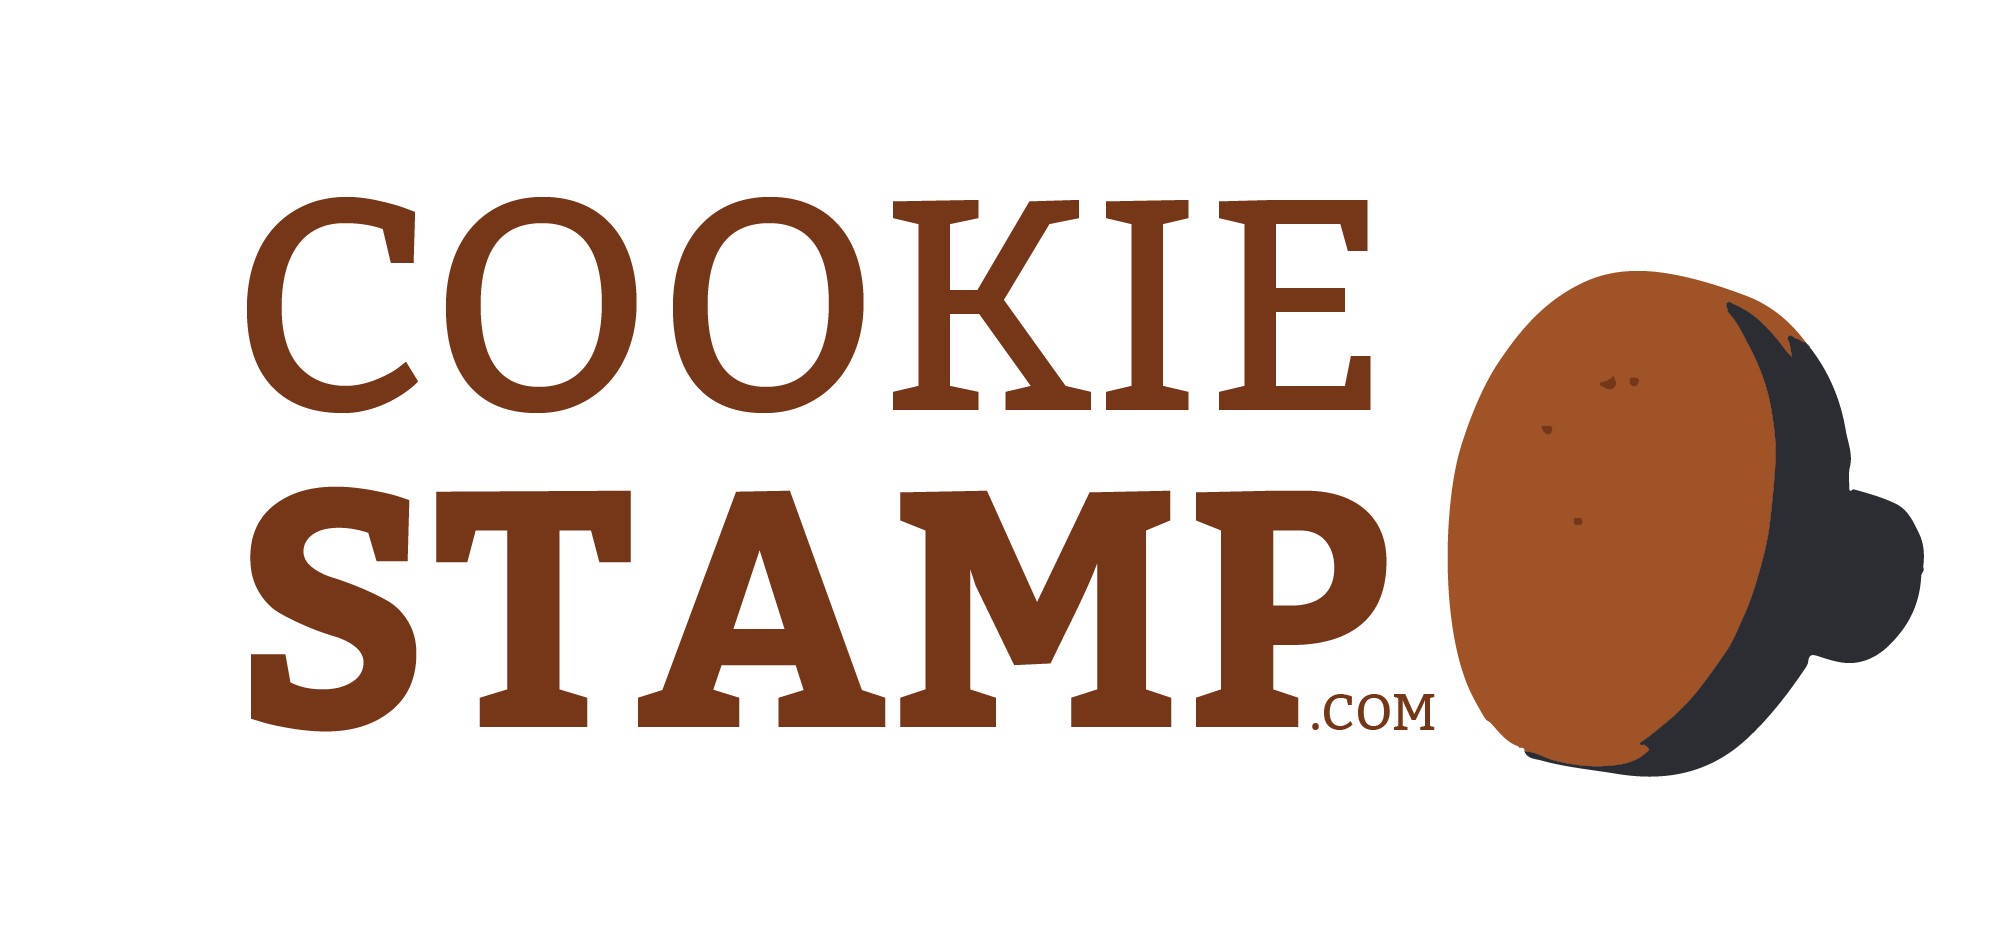 CookieStamp.com